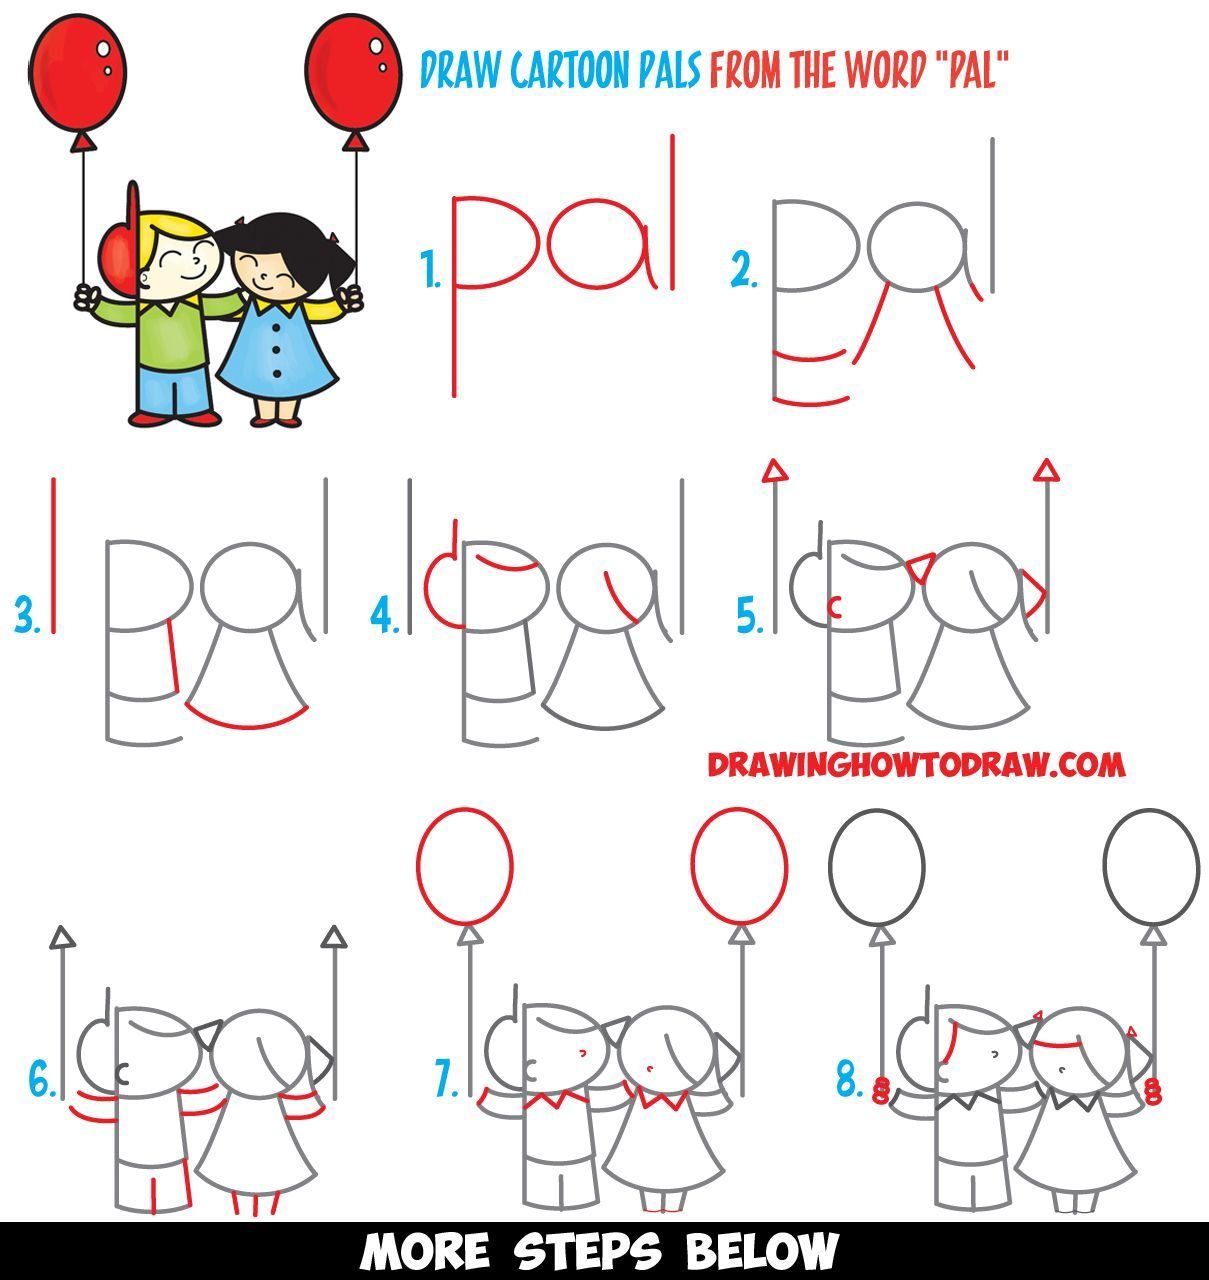 how to draw 2 cartoon friends or pals from the word pal word toon easy step by step drawing tutorial for kids [ 1209 x 1280 Pixel ]